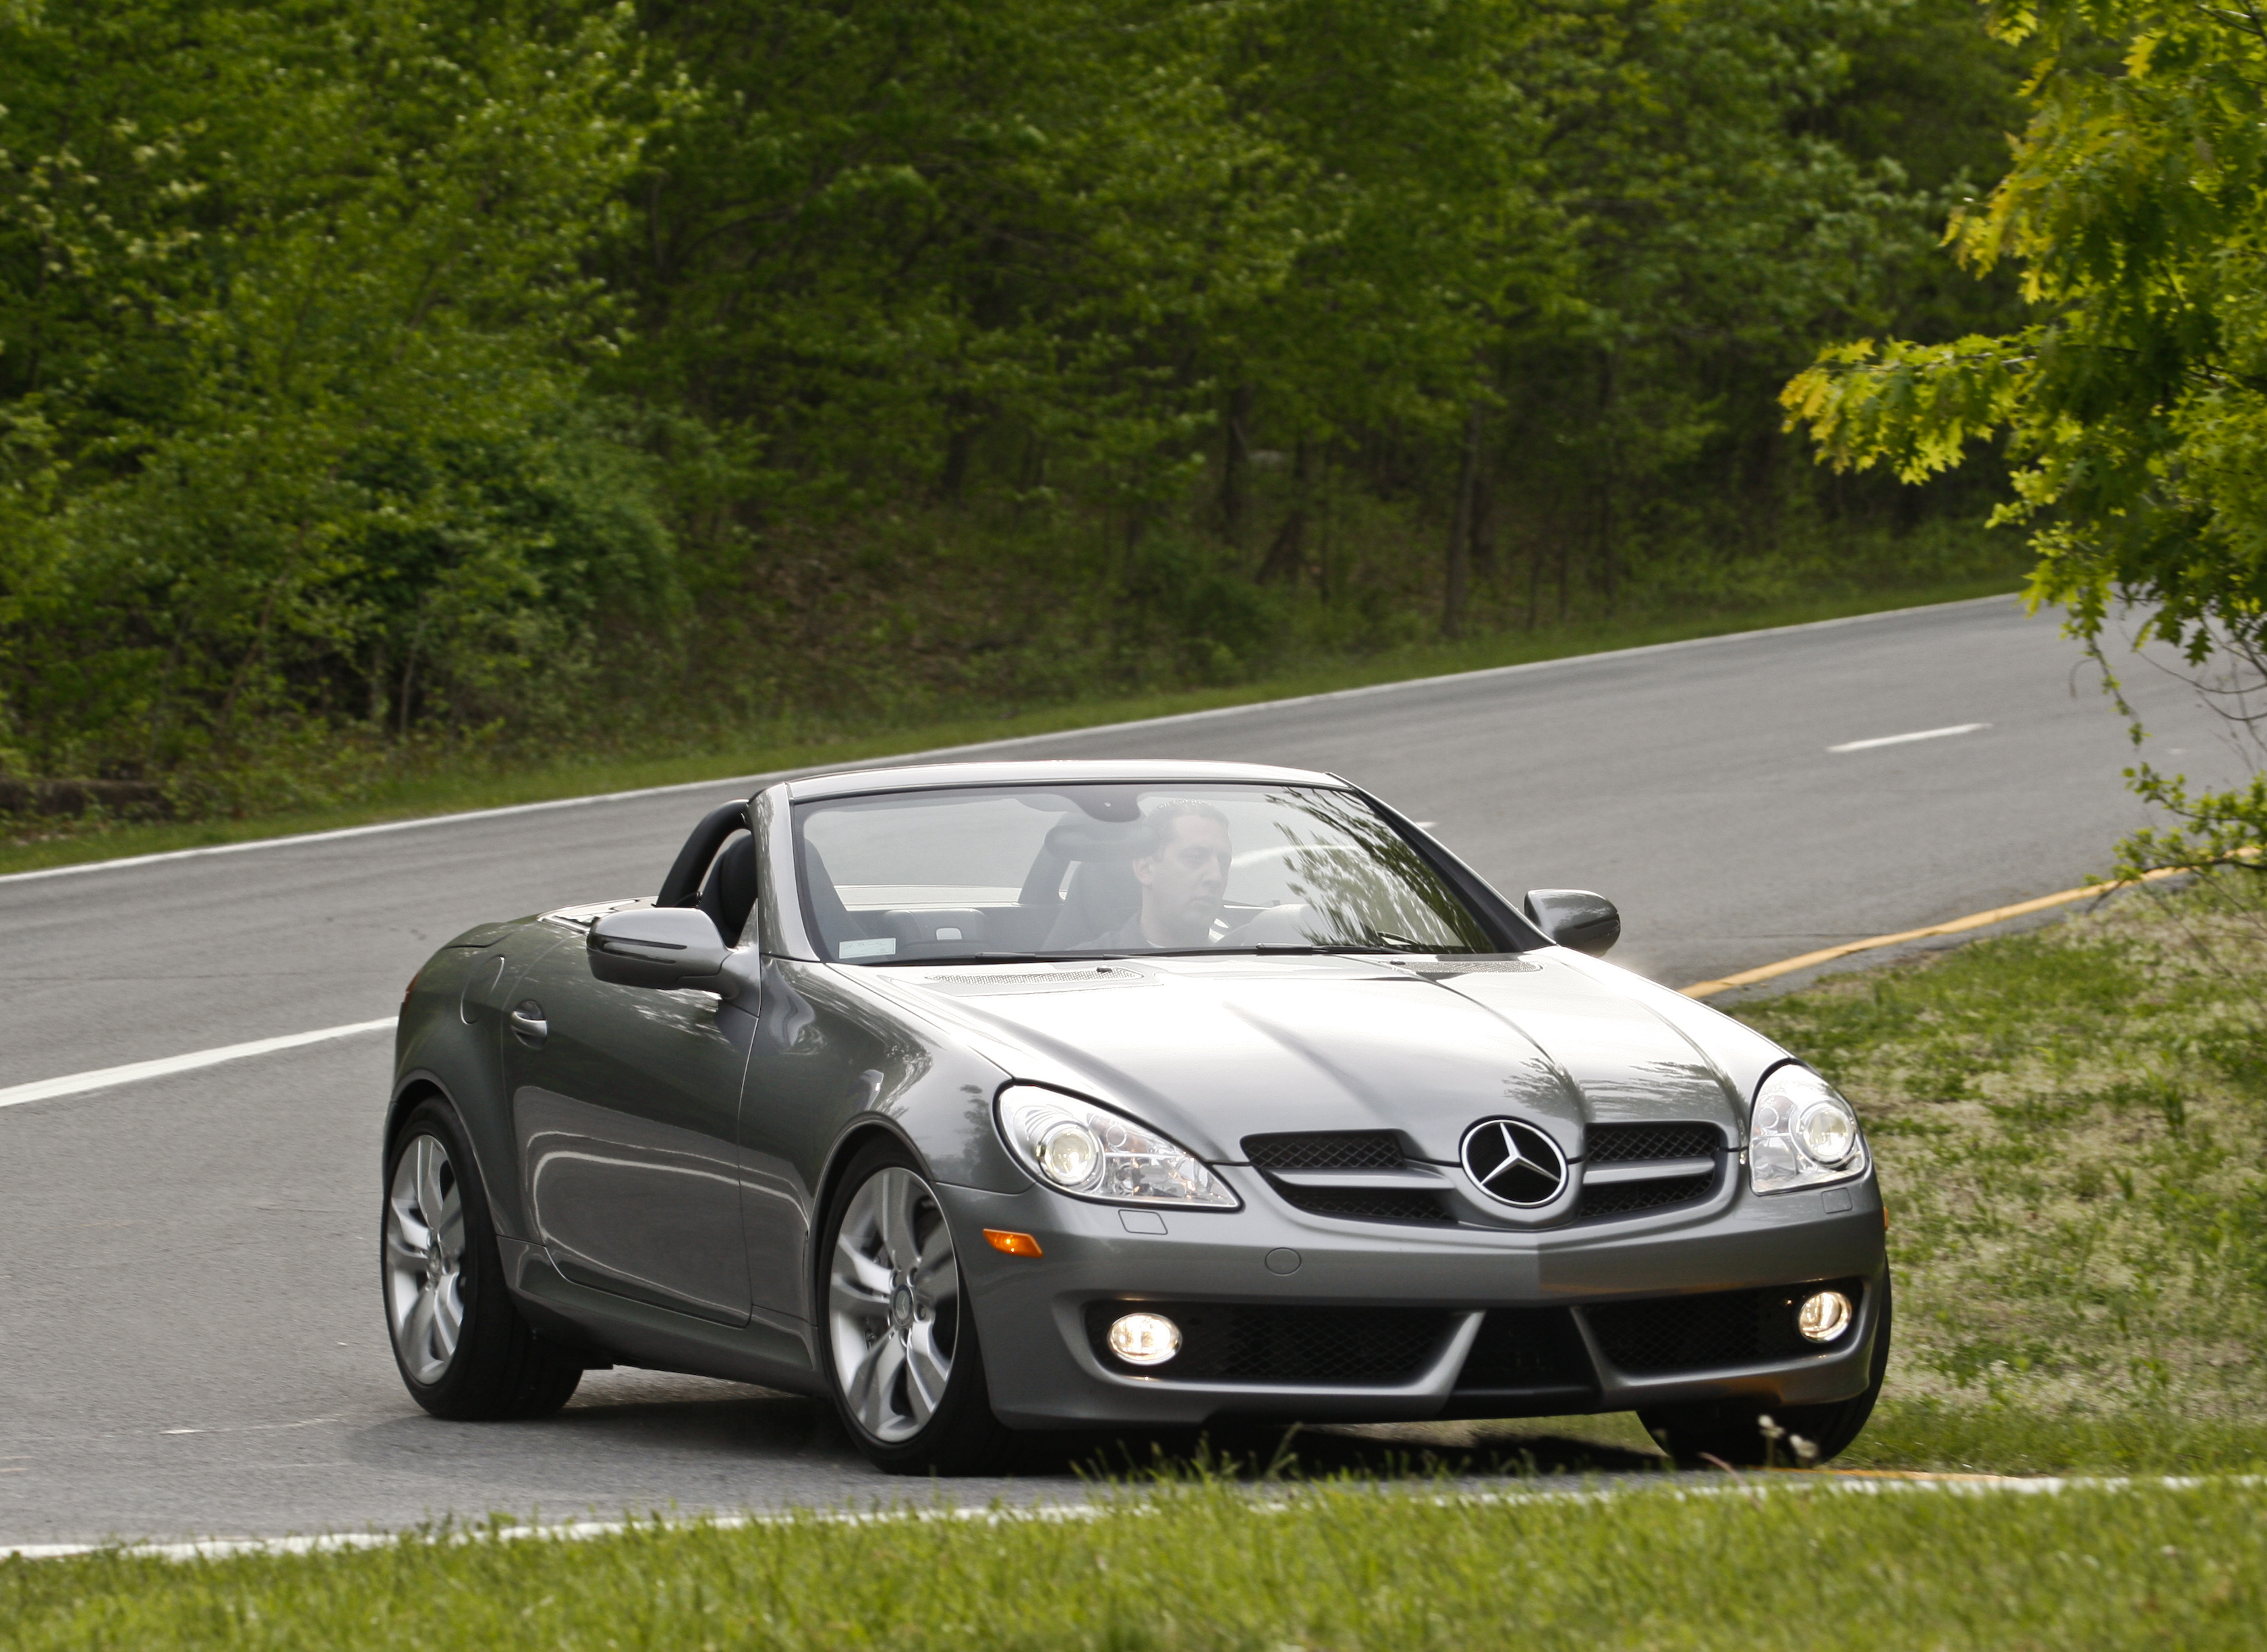 Mercedes benz slk 350 technical details history photos for Mercedes benz slk accessories